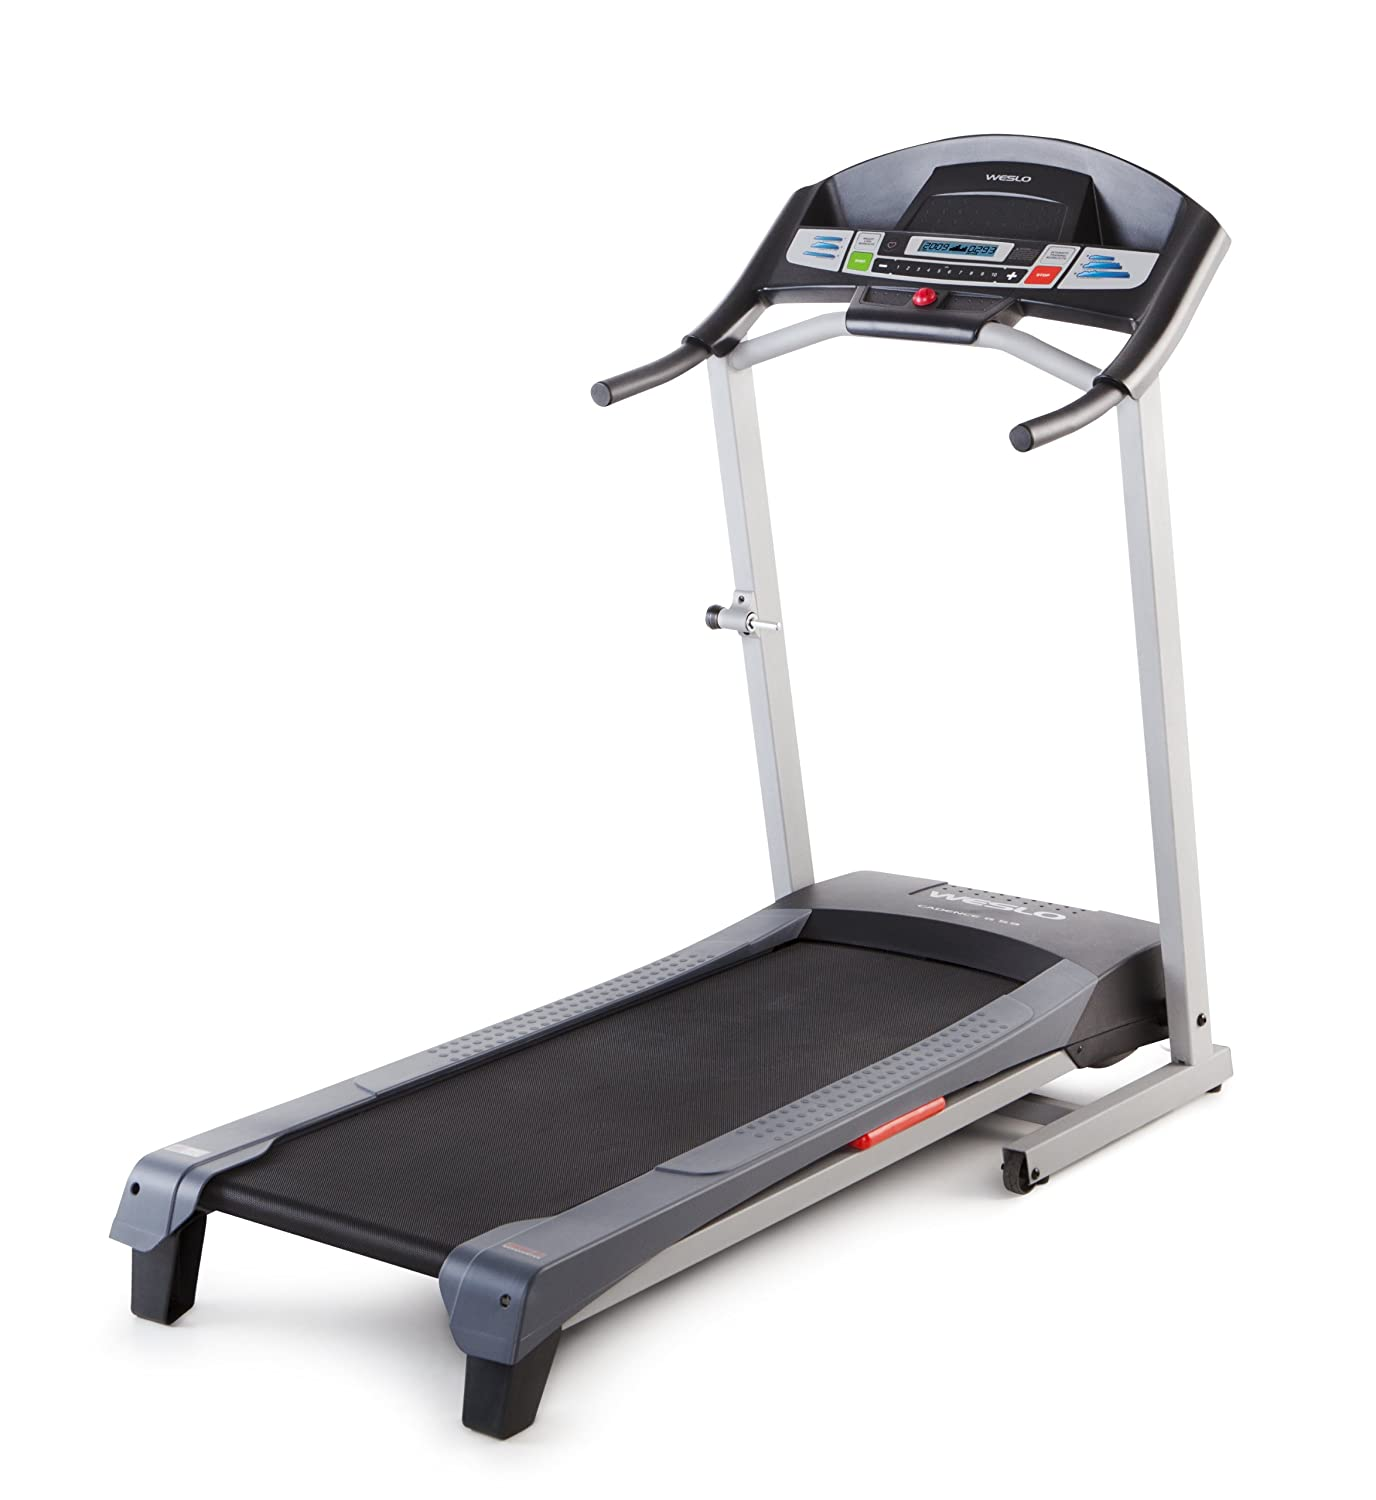 Horizon T101 Treadmill Instructions: Top Manual Treadmill Reviews